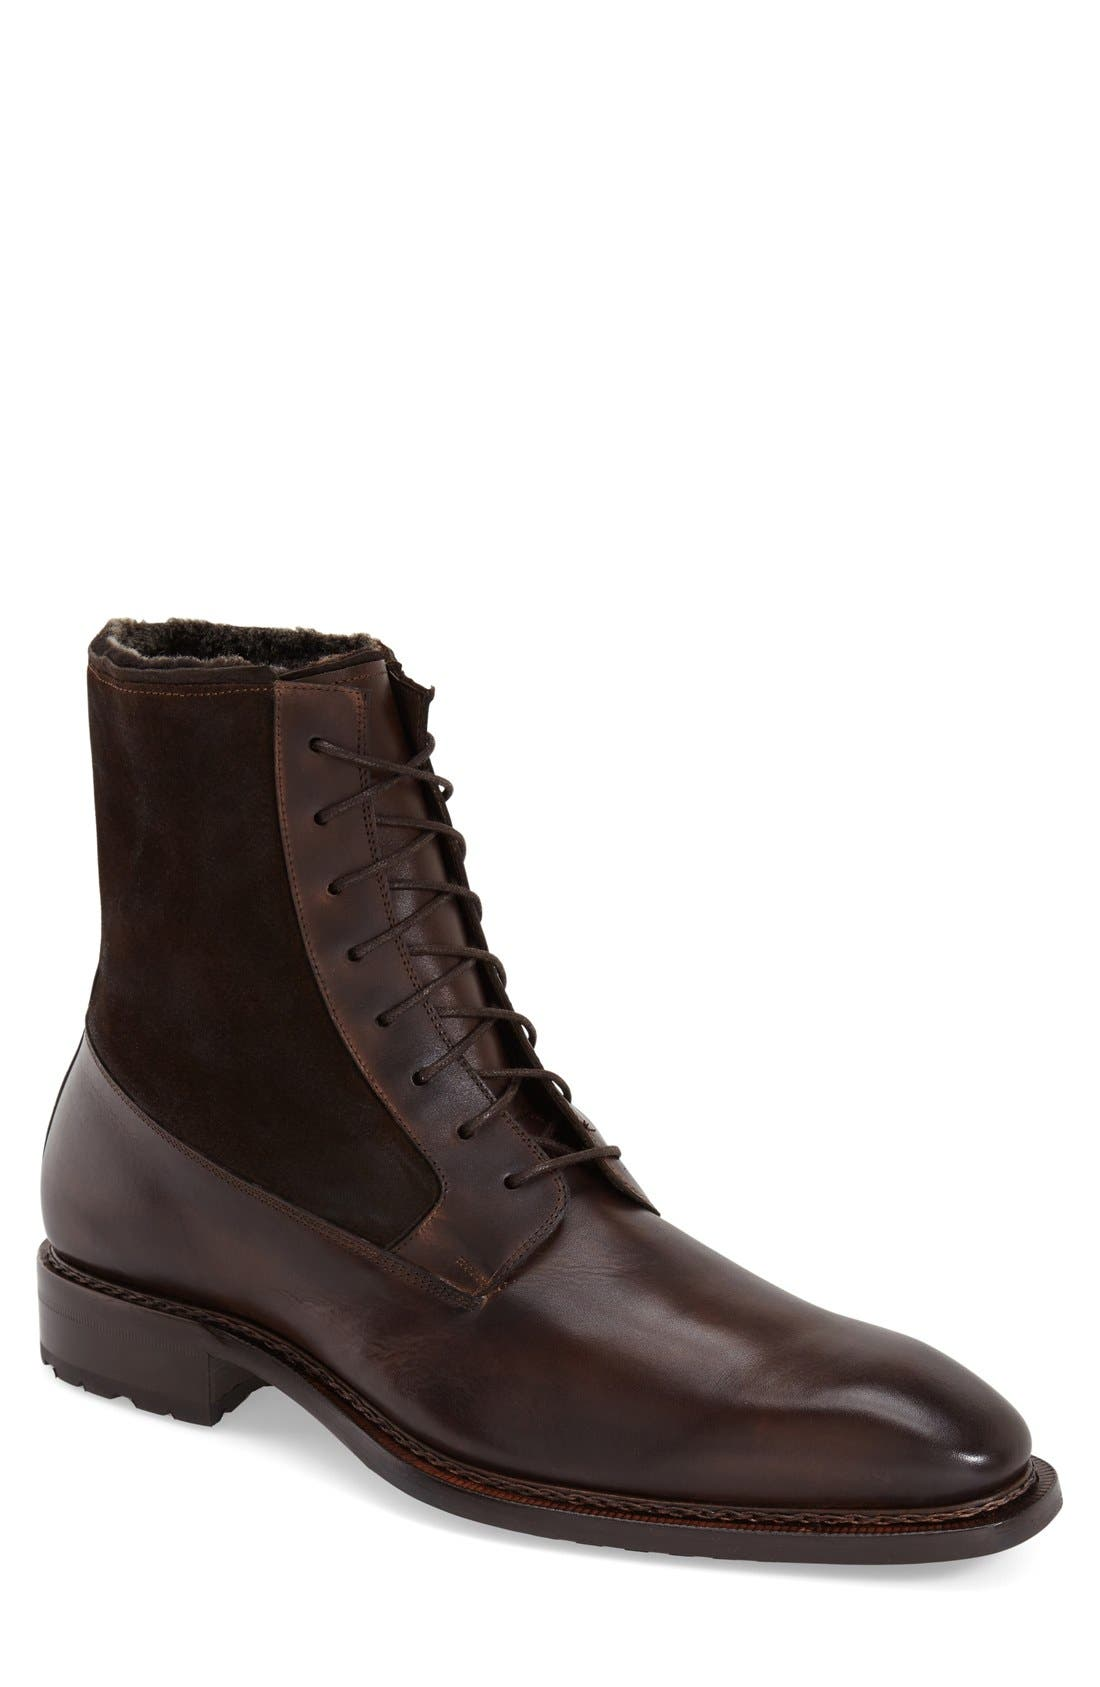 Alternate Image 1 Selected - Mezlan 'Luzern' Genuine Shearling Boot (Men)